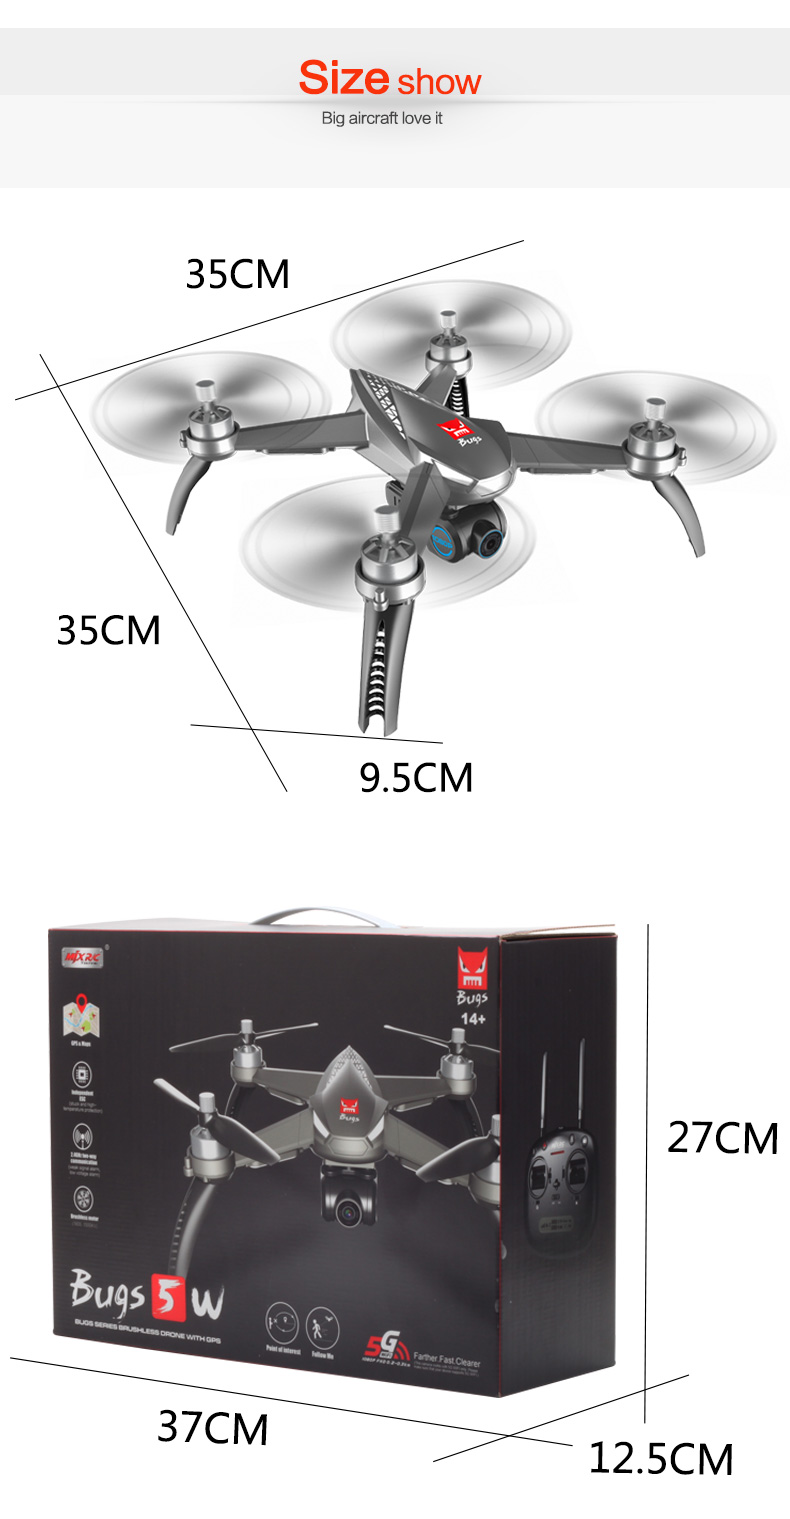 Profissional Brushless Motor GPS Drone MJX B5W Drones With Camera HD 1080P  5G WIFI FPV Camera RC Helicopte Quadcopter v JJPRO x5